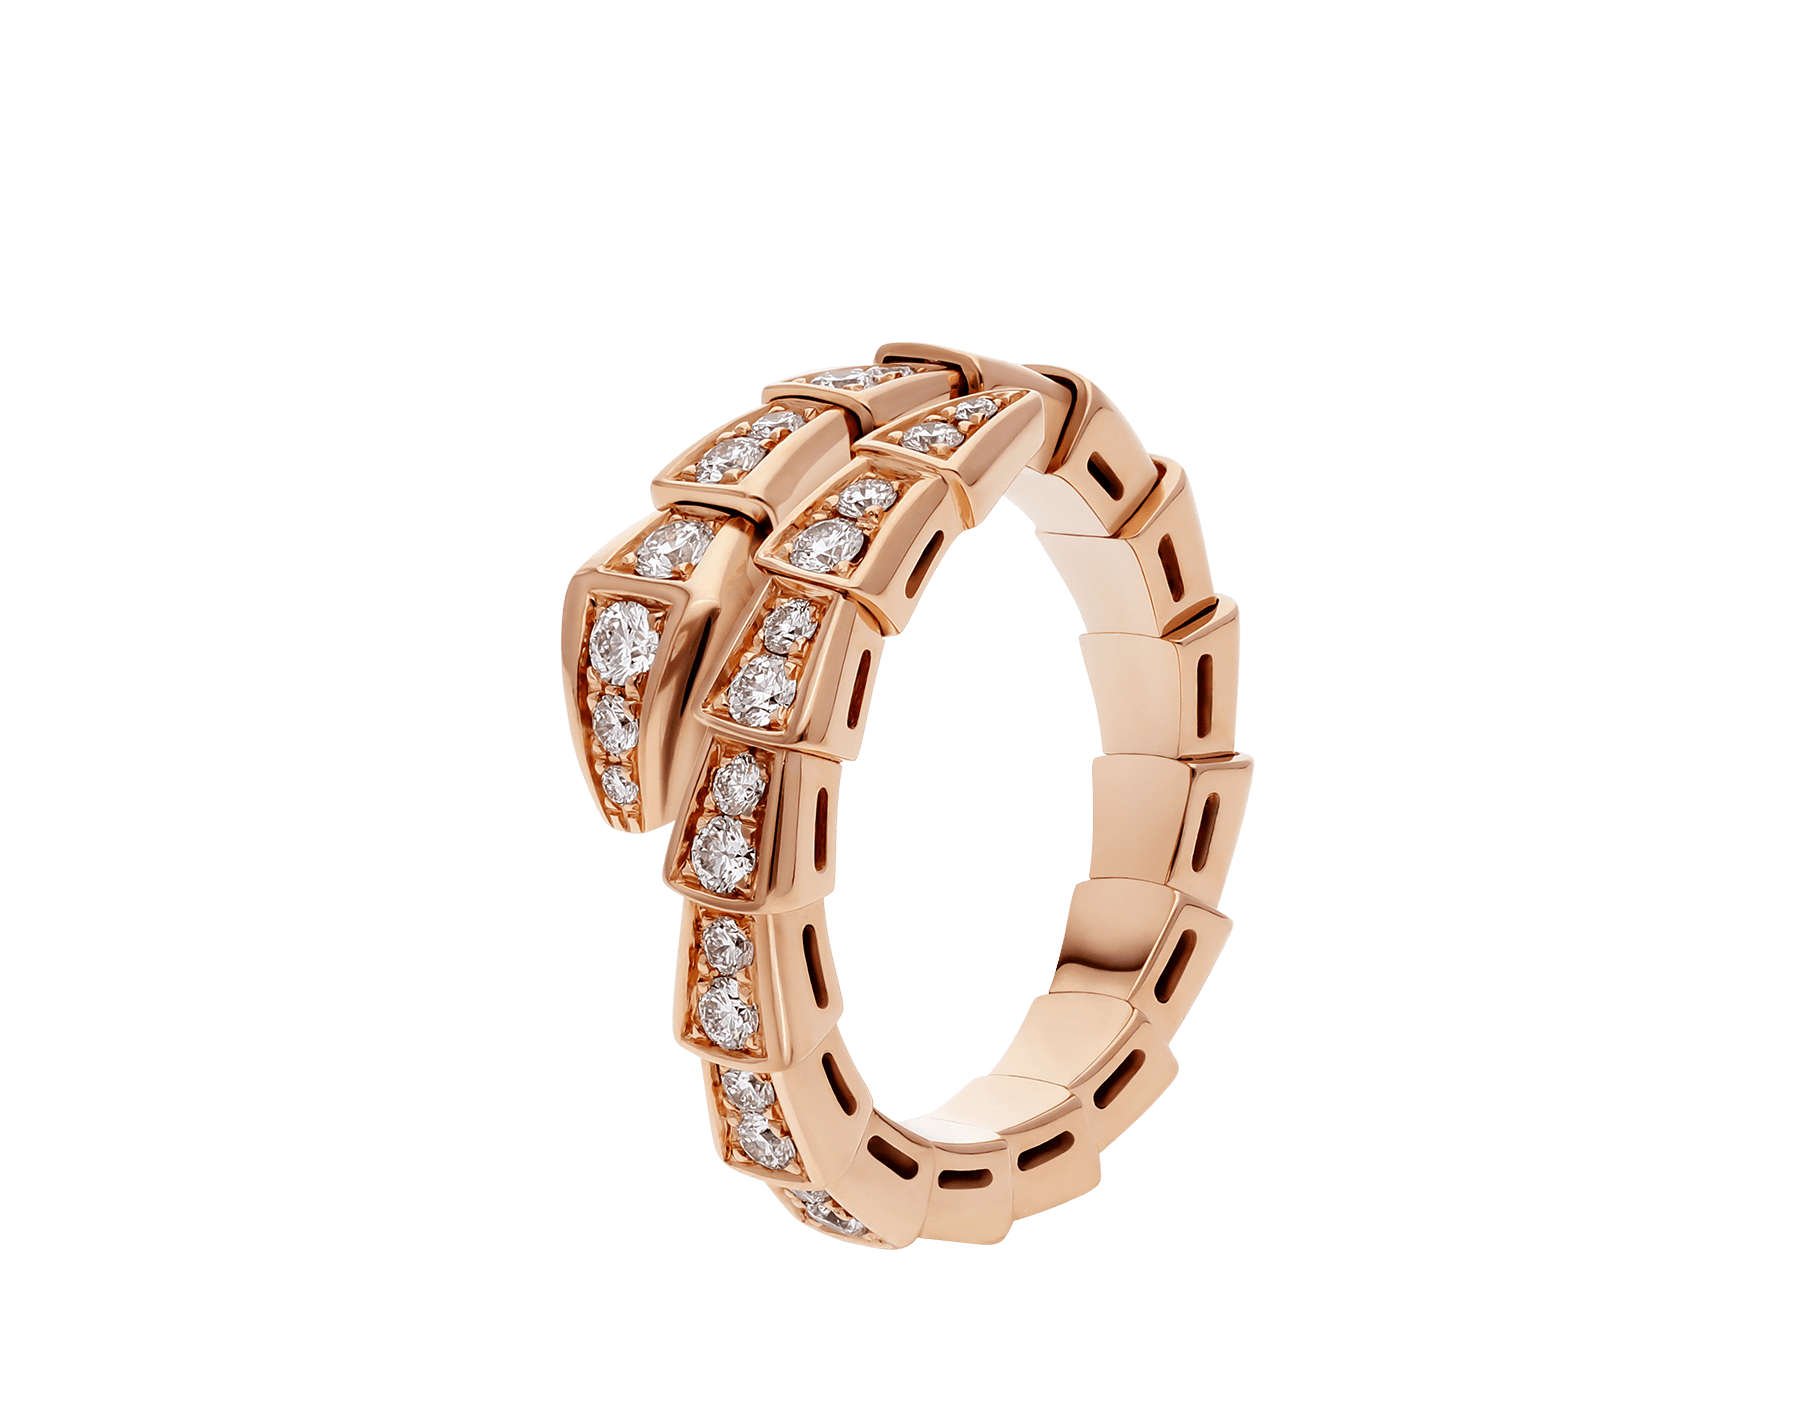 Bague Serpenti Viper en or rose 18 K avec pavé diamants AN858522 image 1